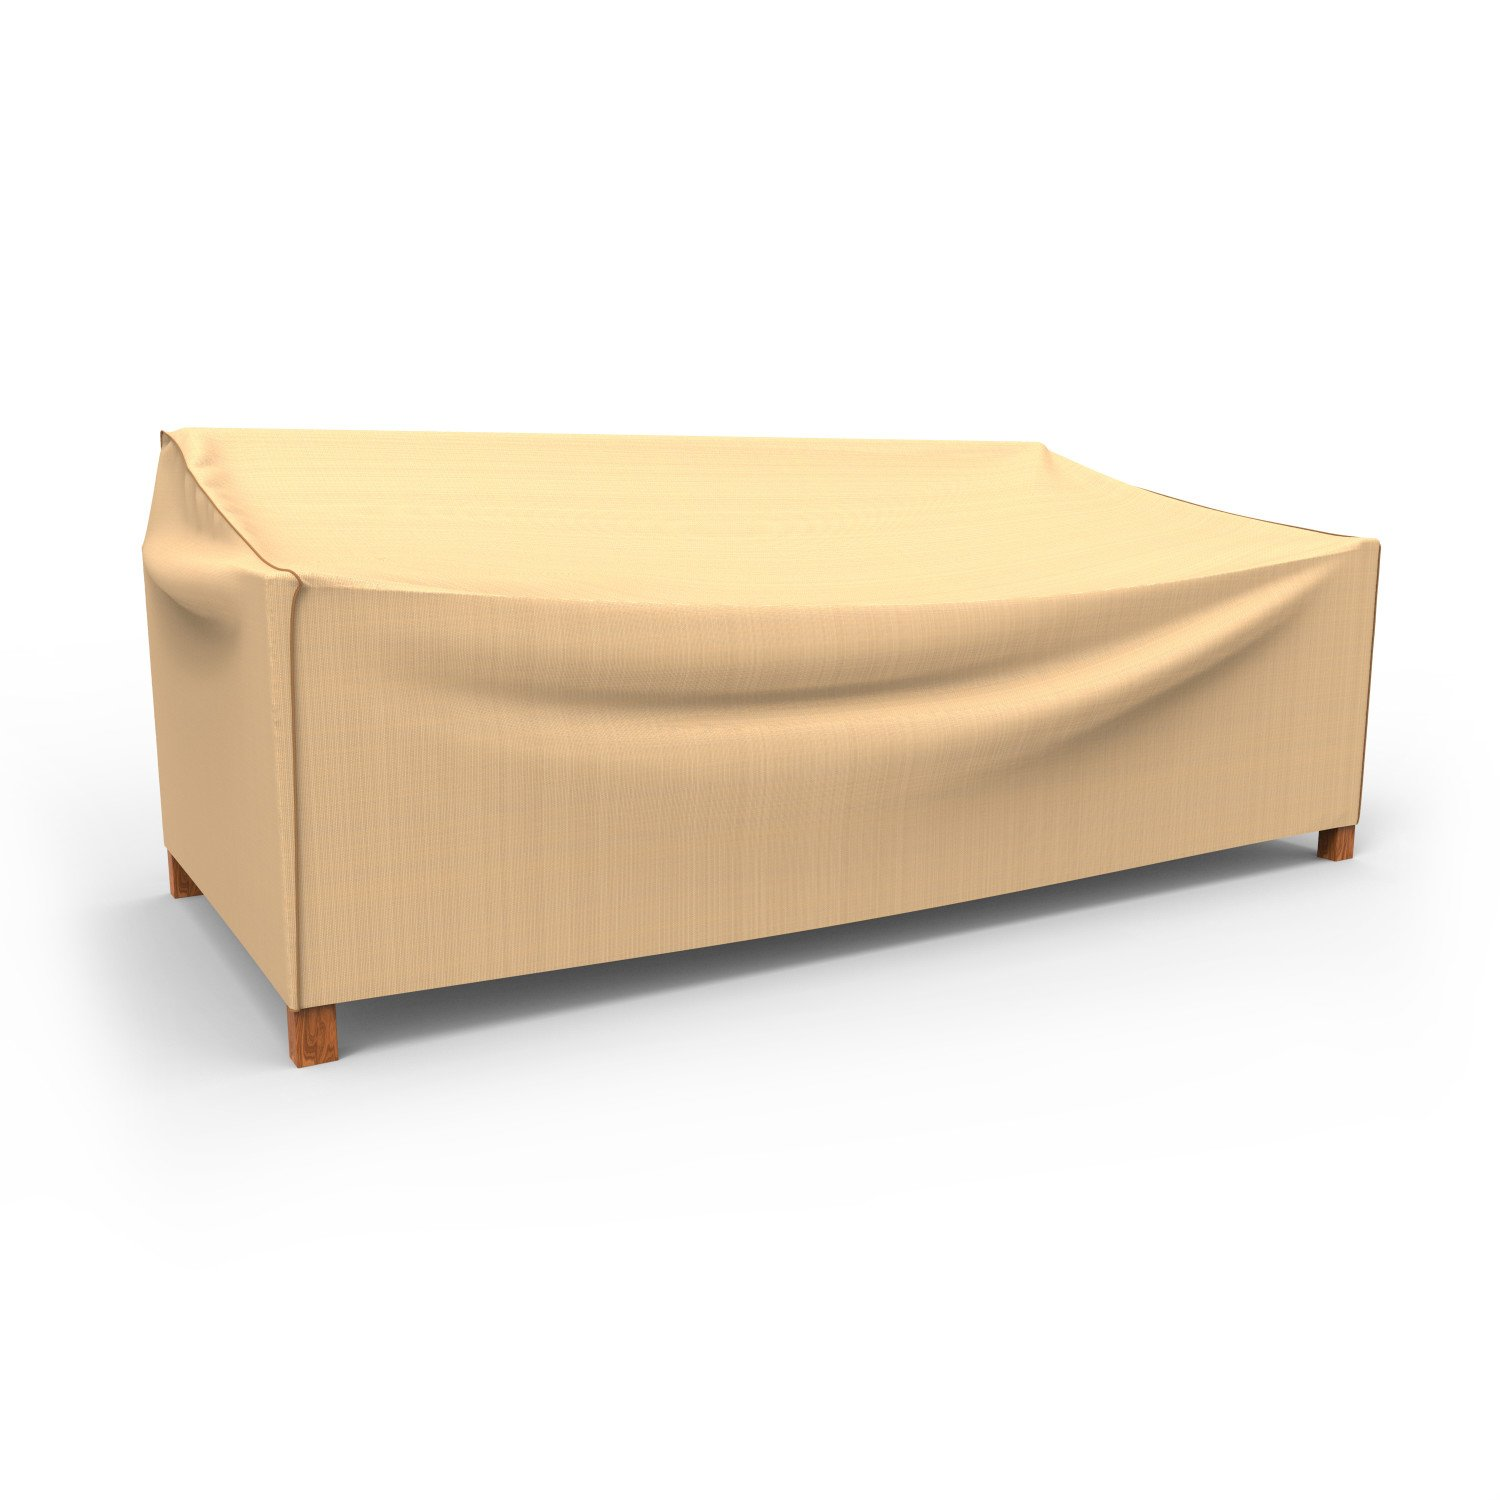 Budge P3W05TNNW1 Sedona Patio Sofa Cover, Extra Large, Tan by Budge